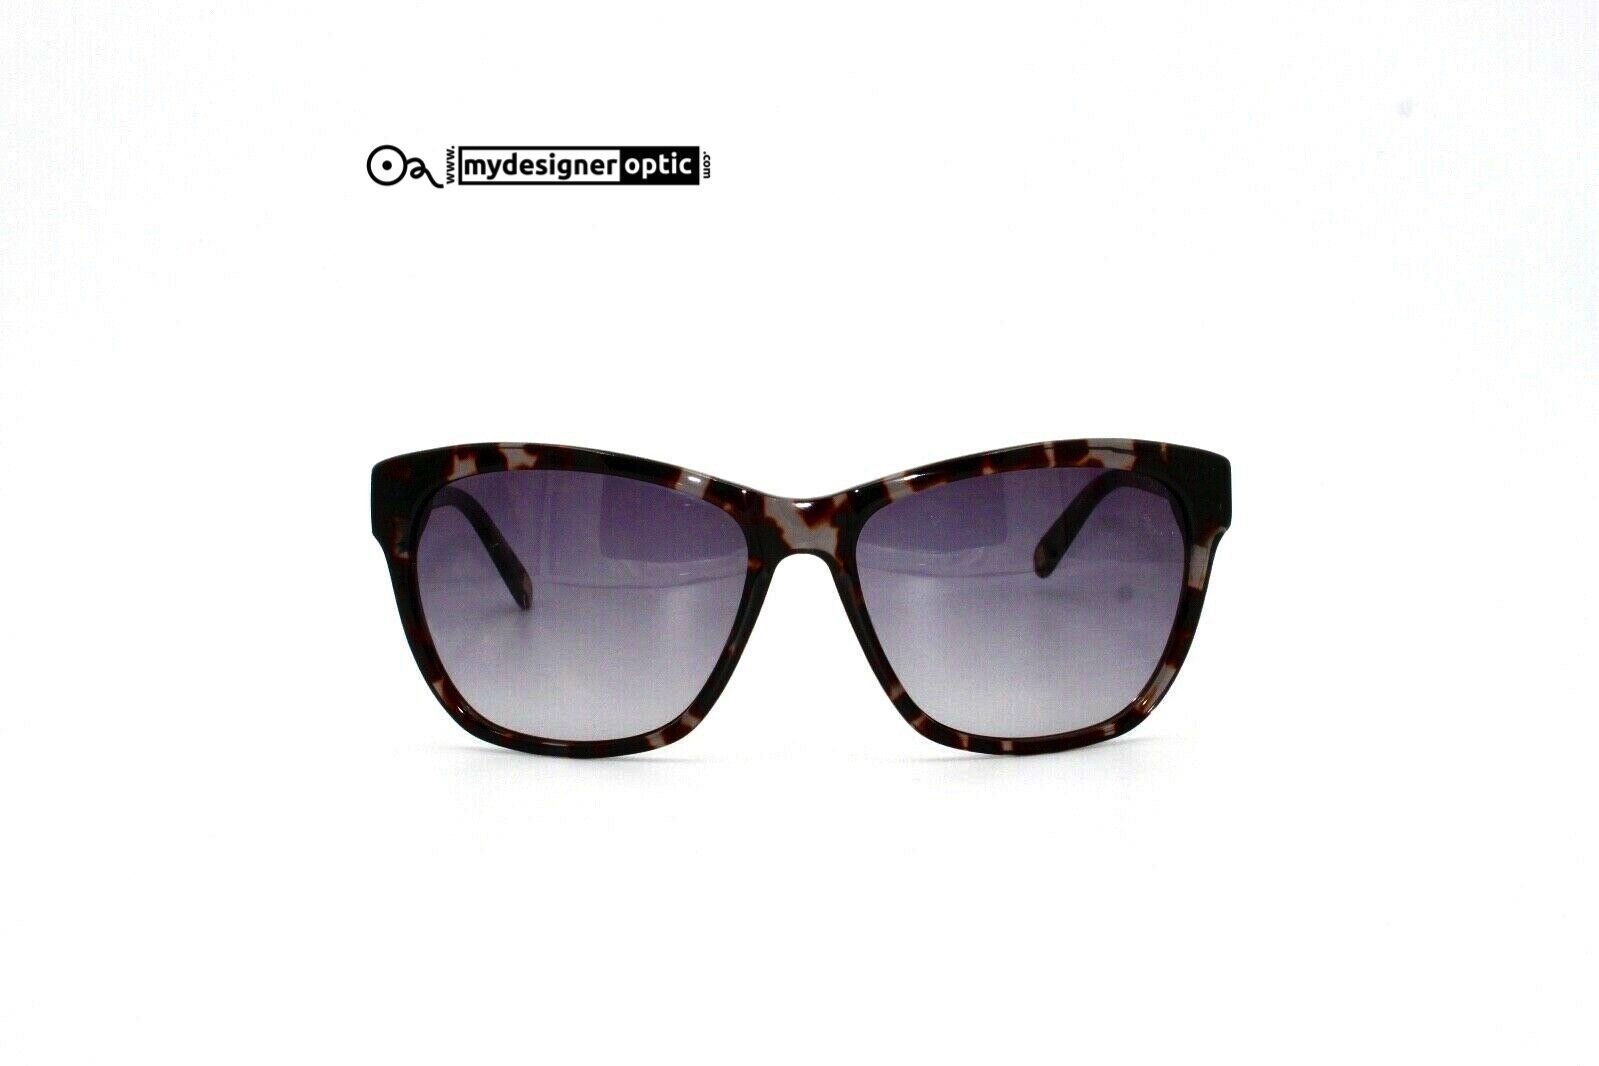 Nine West Sunglasses NW557S 018 58-17-135 - Mydesigneroptic